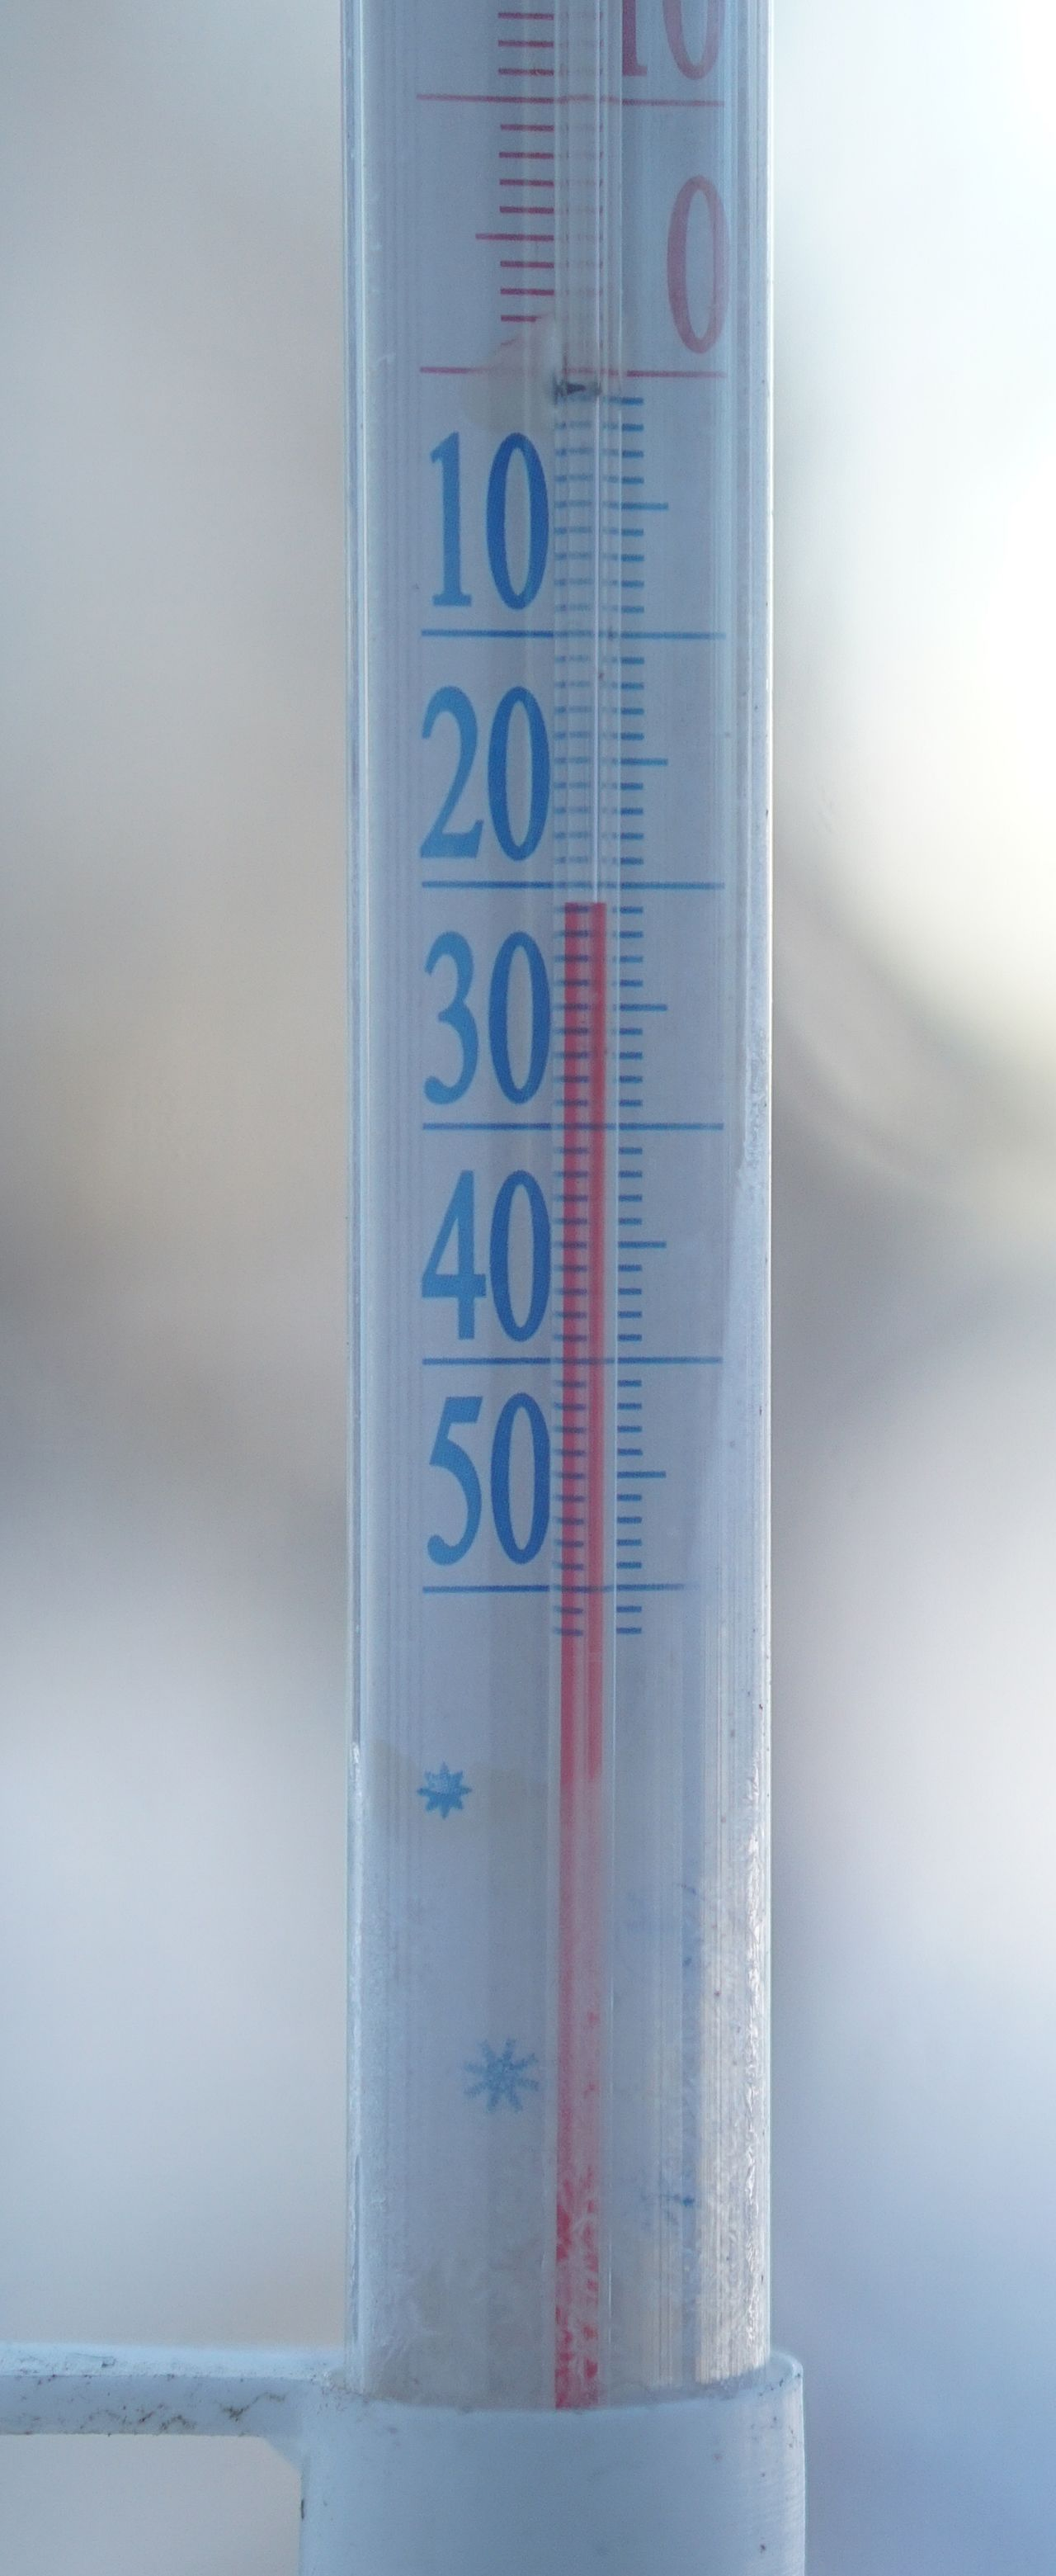 this morning Close-up Cold Day Healthcare And Medicine No People Temperature Thermometer Window